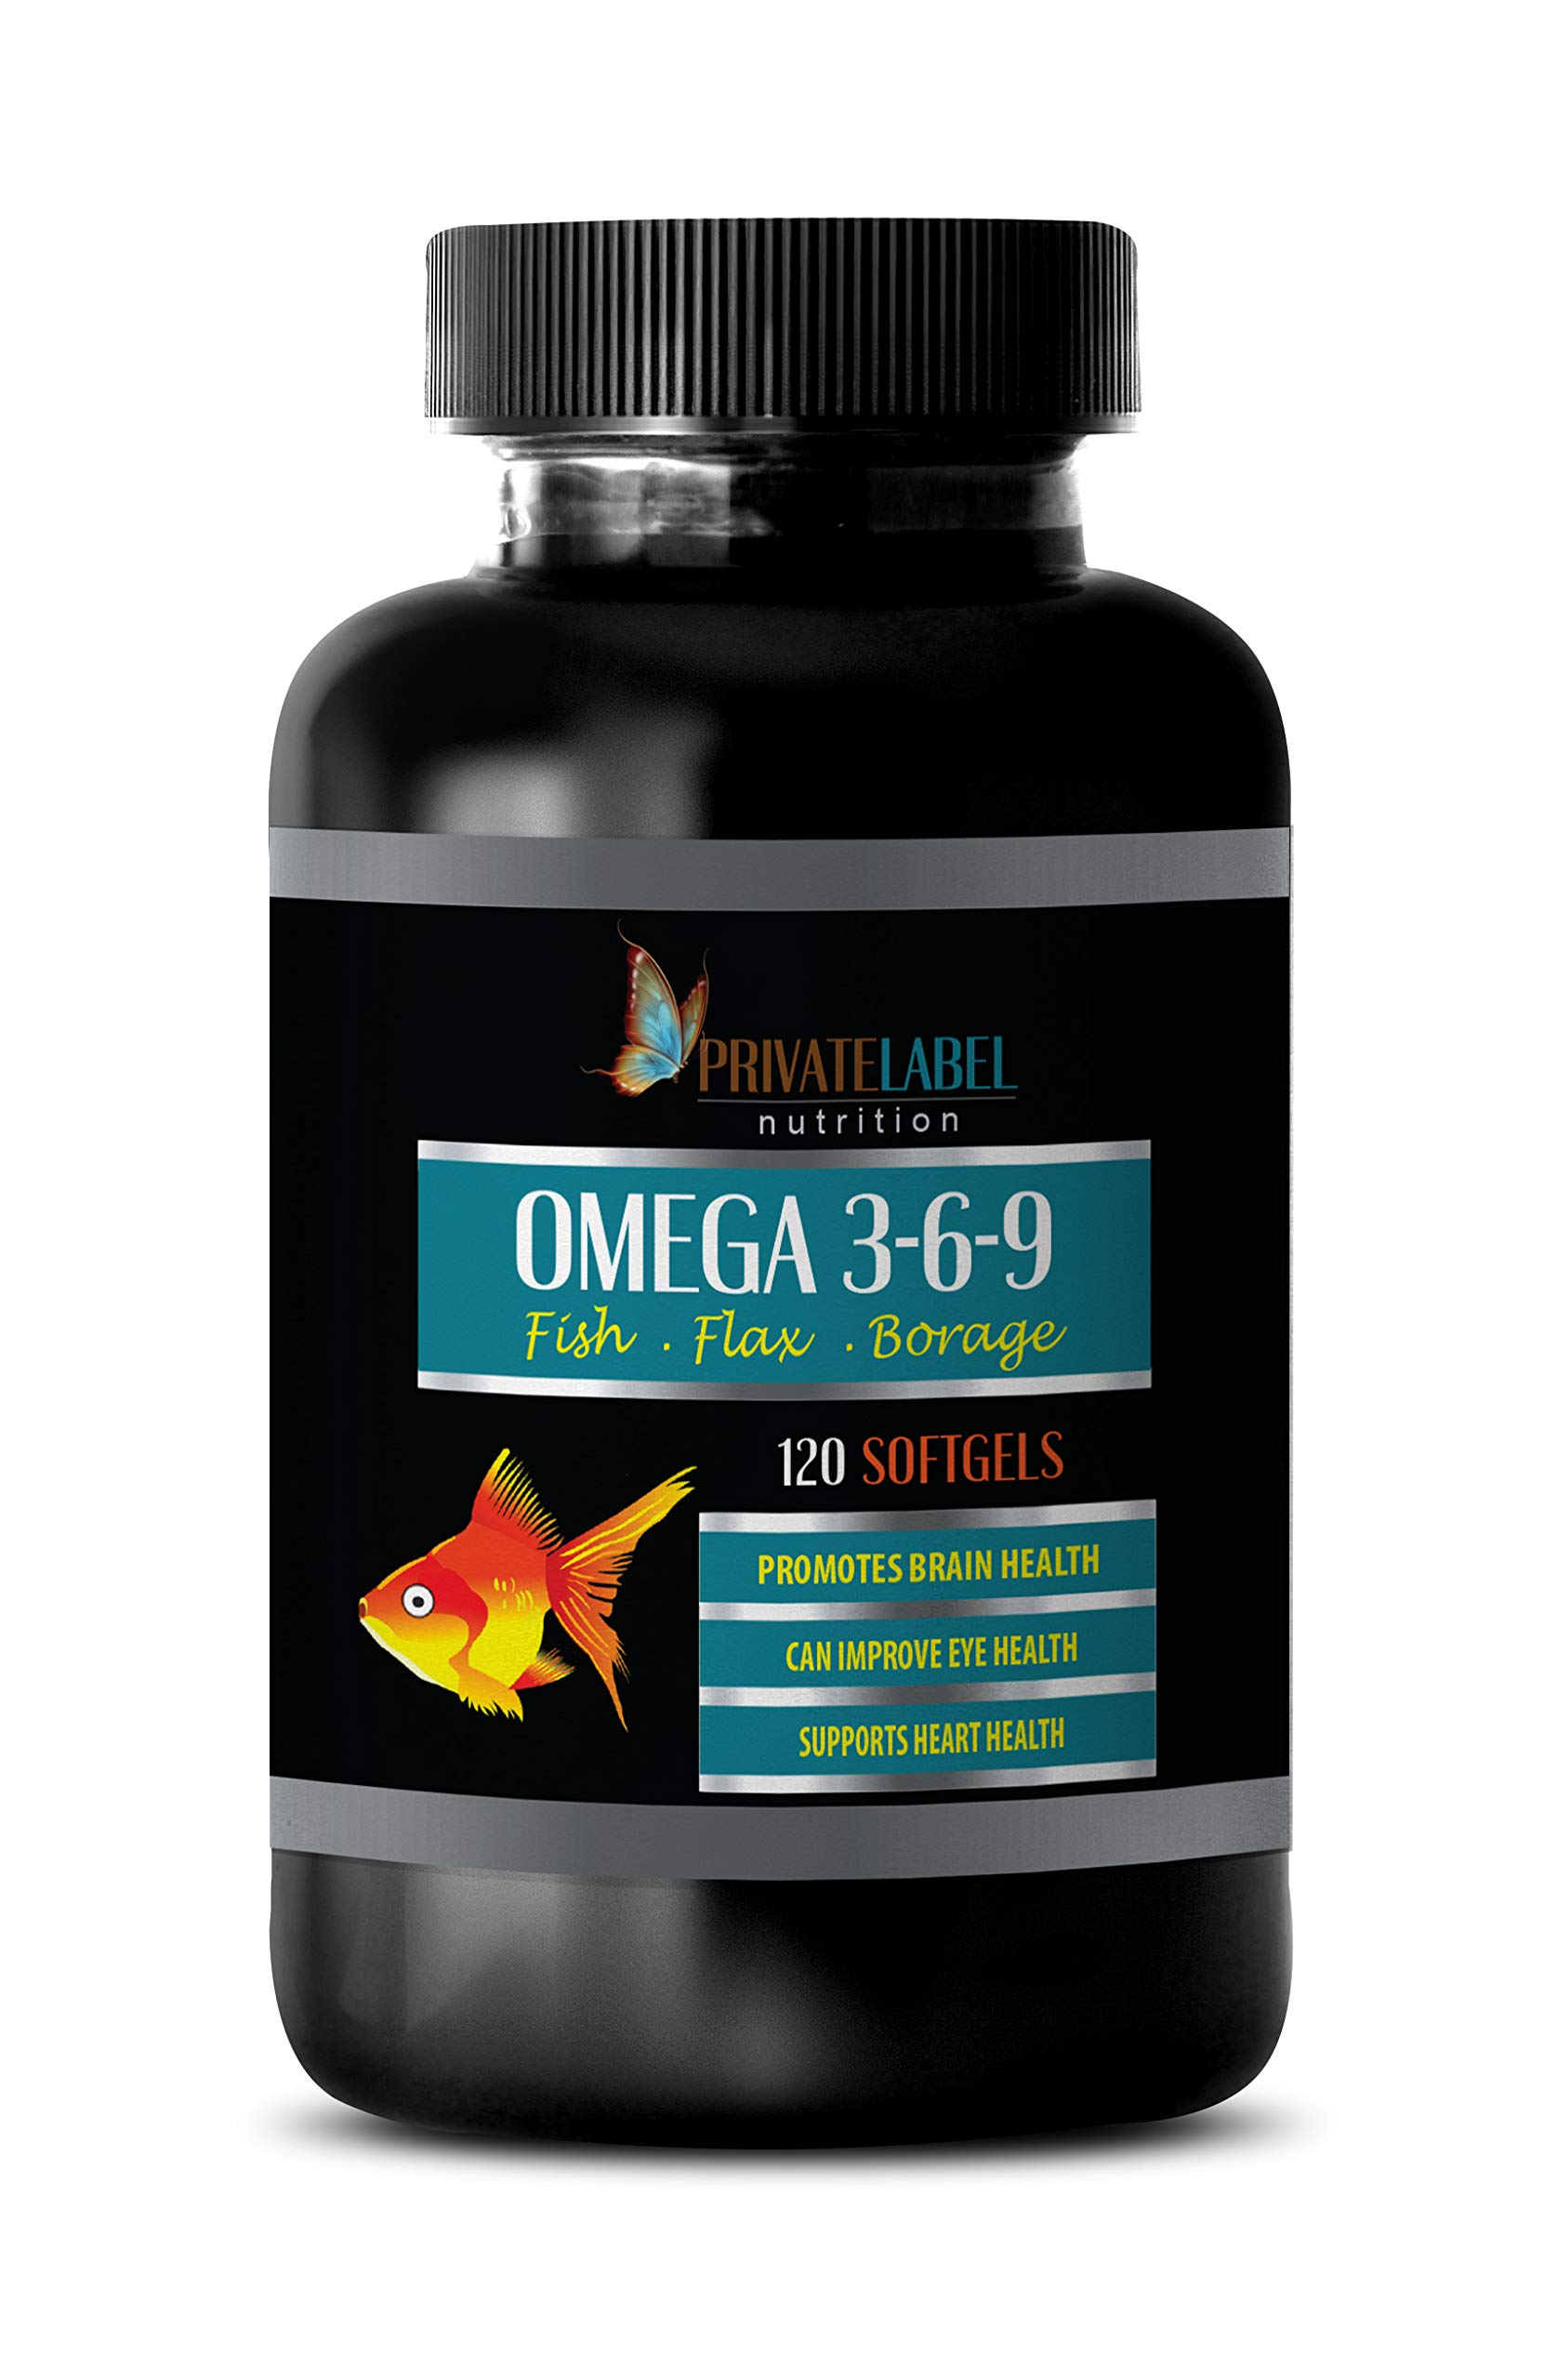 Cholesterol lowering Products - Omega 3 6 9 with Fish Oil, Flax & Borage - Omega 3 Supplements - 1 Bottle 120 Softgels by PRIVATE LABEL LLC